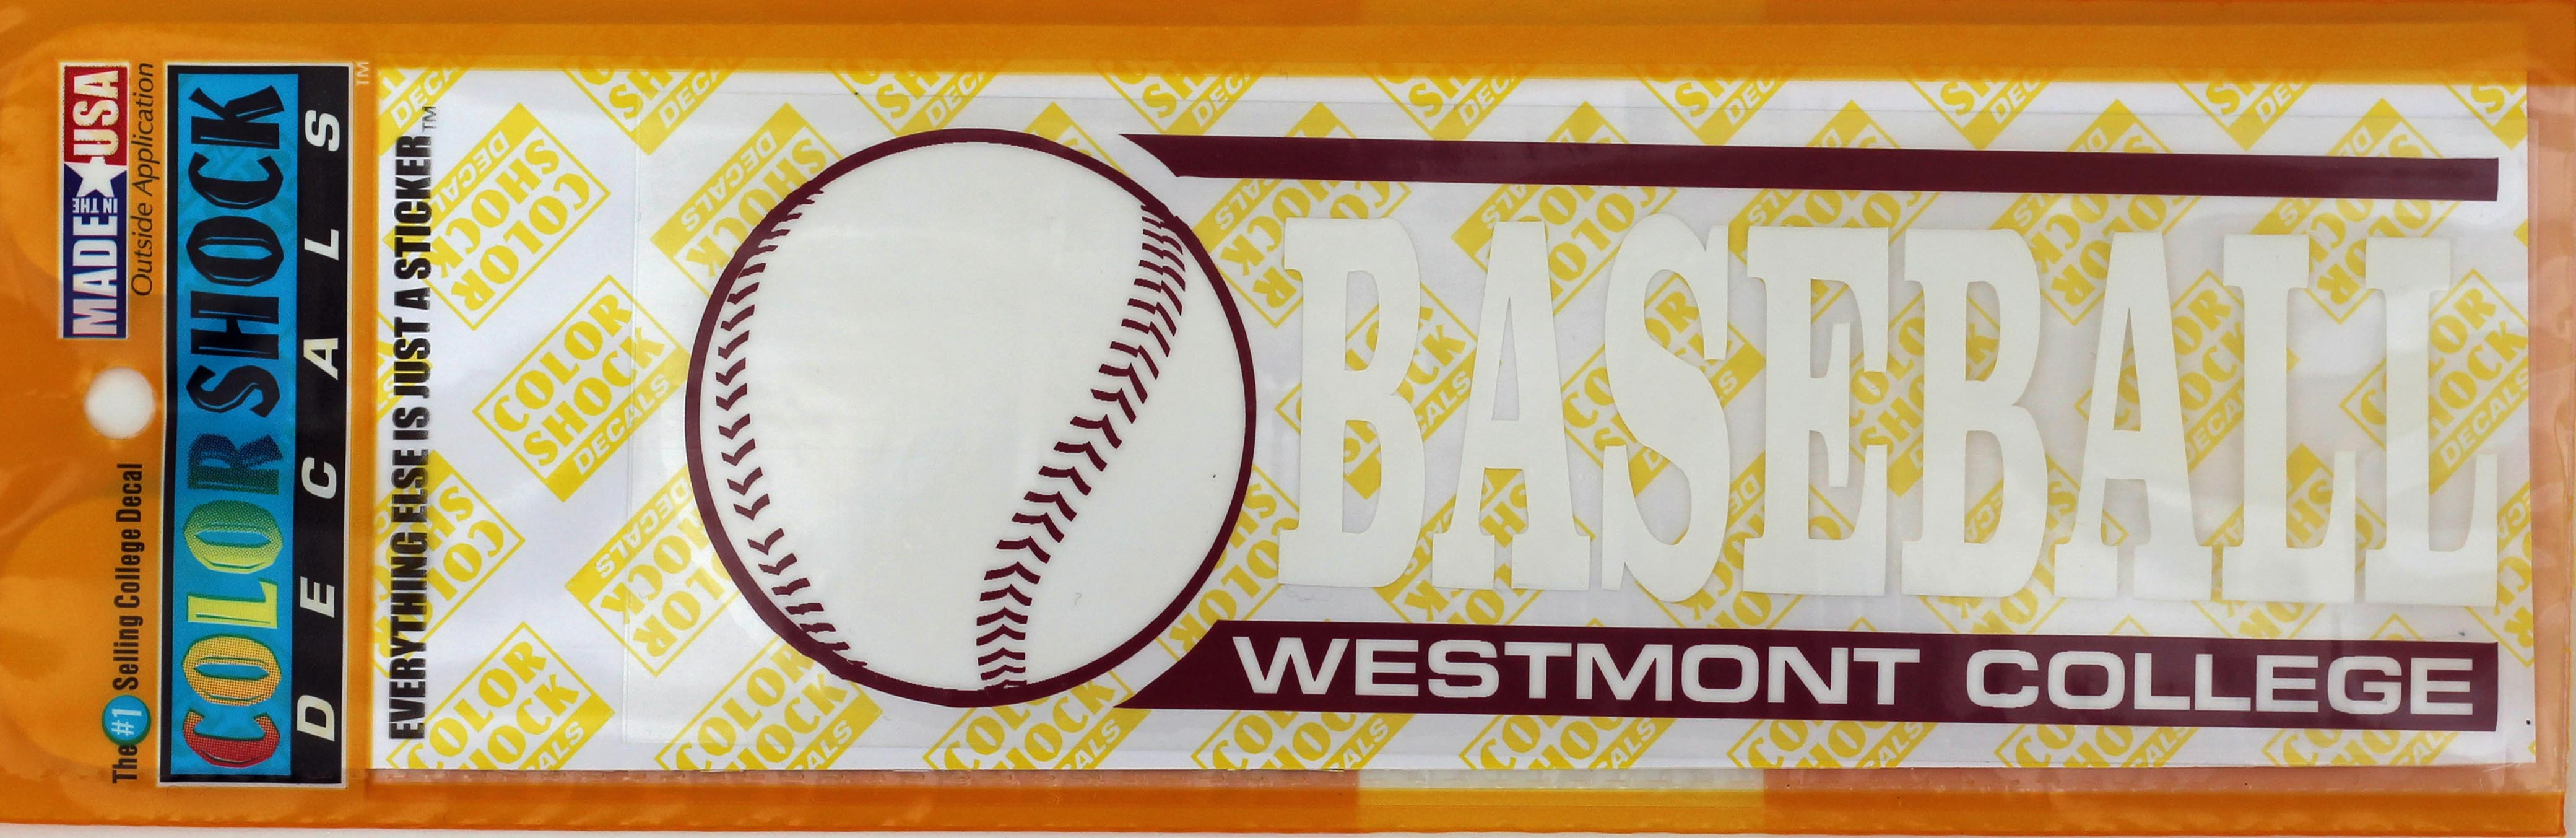 Image for the Color Shock Baseball Decal product